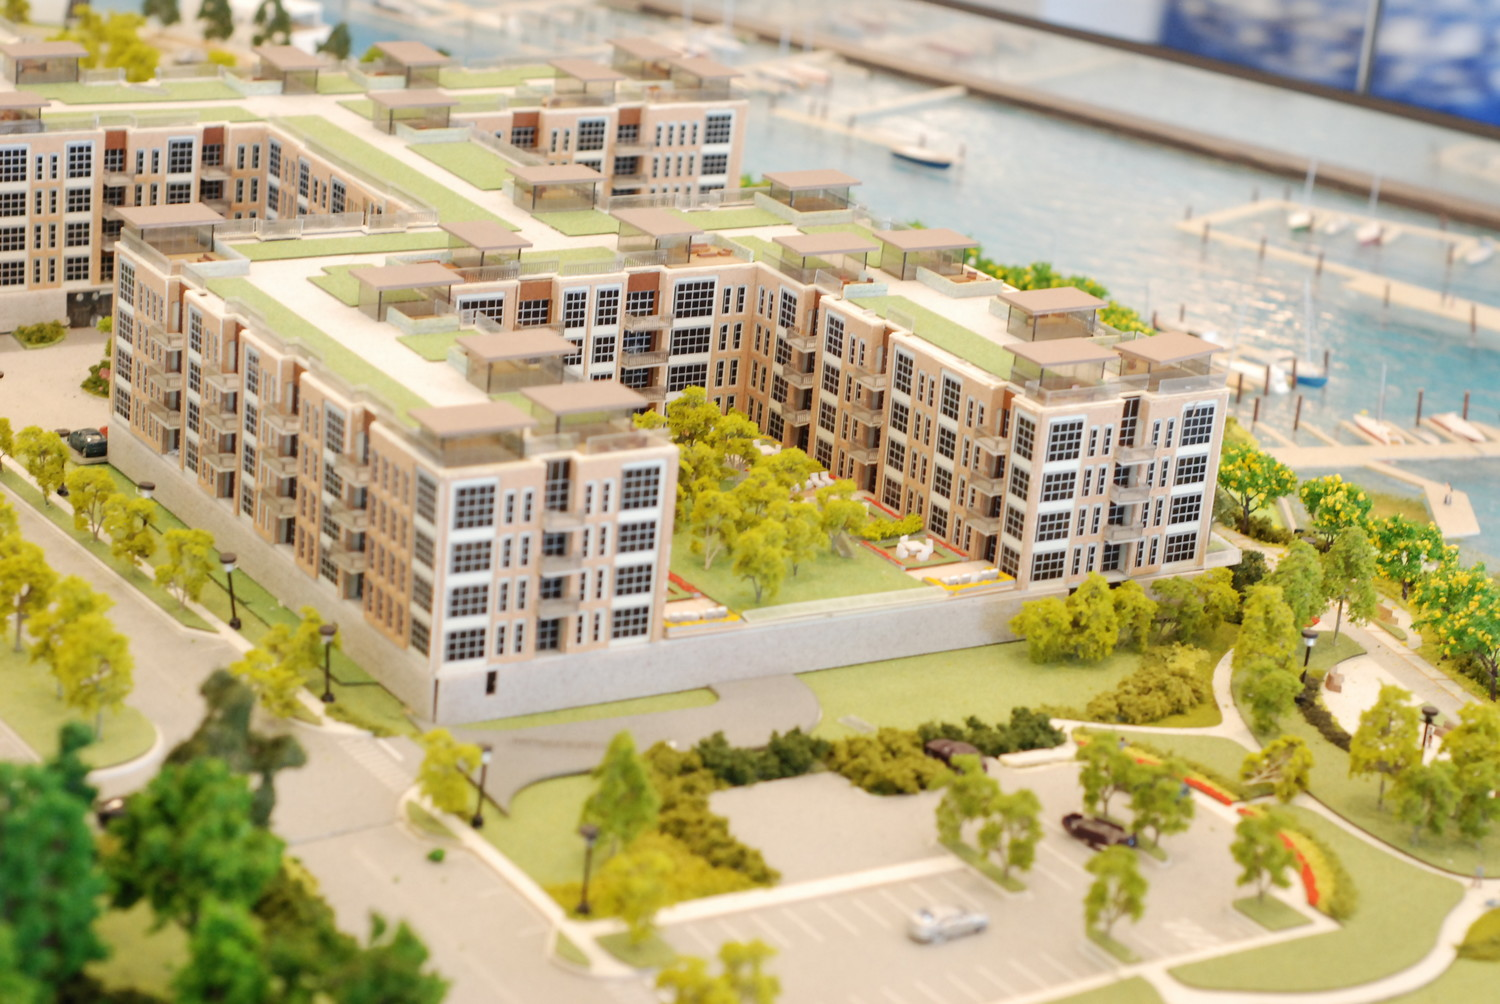 A model of the Beacon project shows what the development will likely end up looking like.